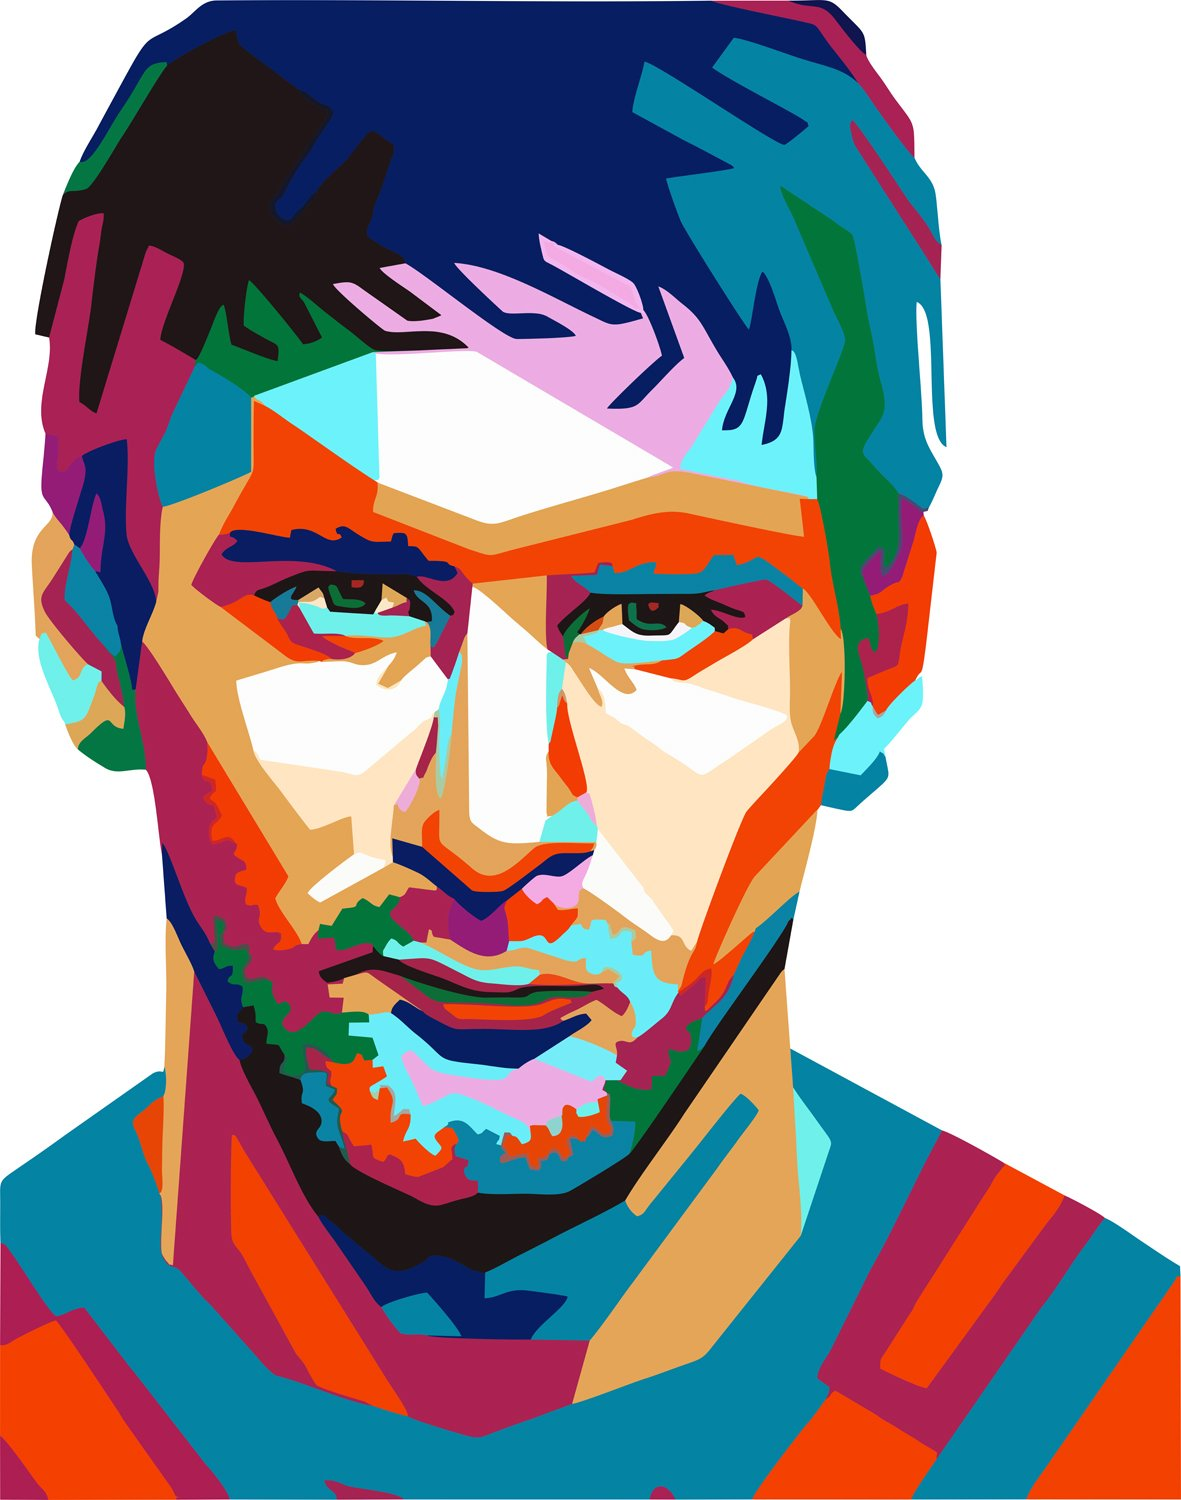 1181x1500 art bundlemessi fan art decorative poster lionel messi poster